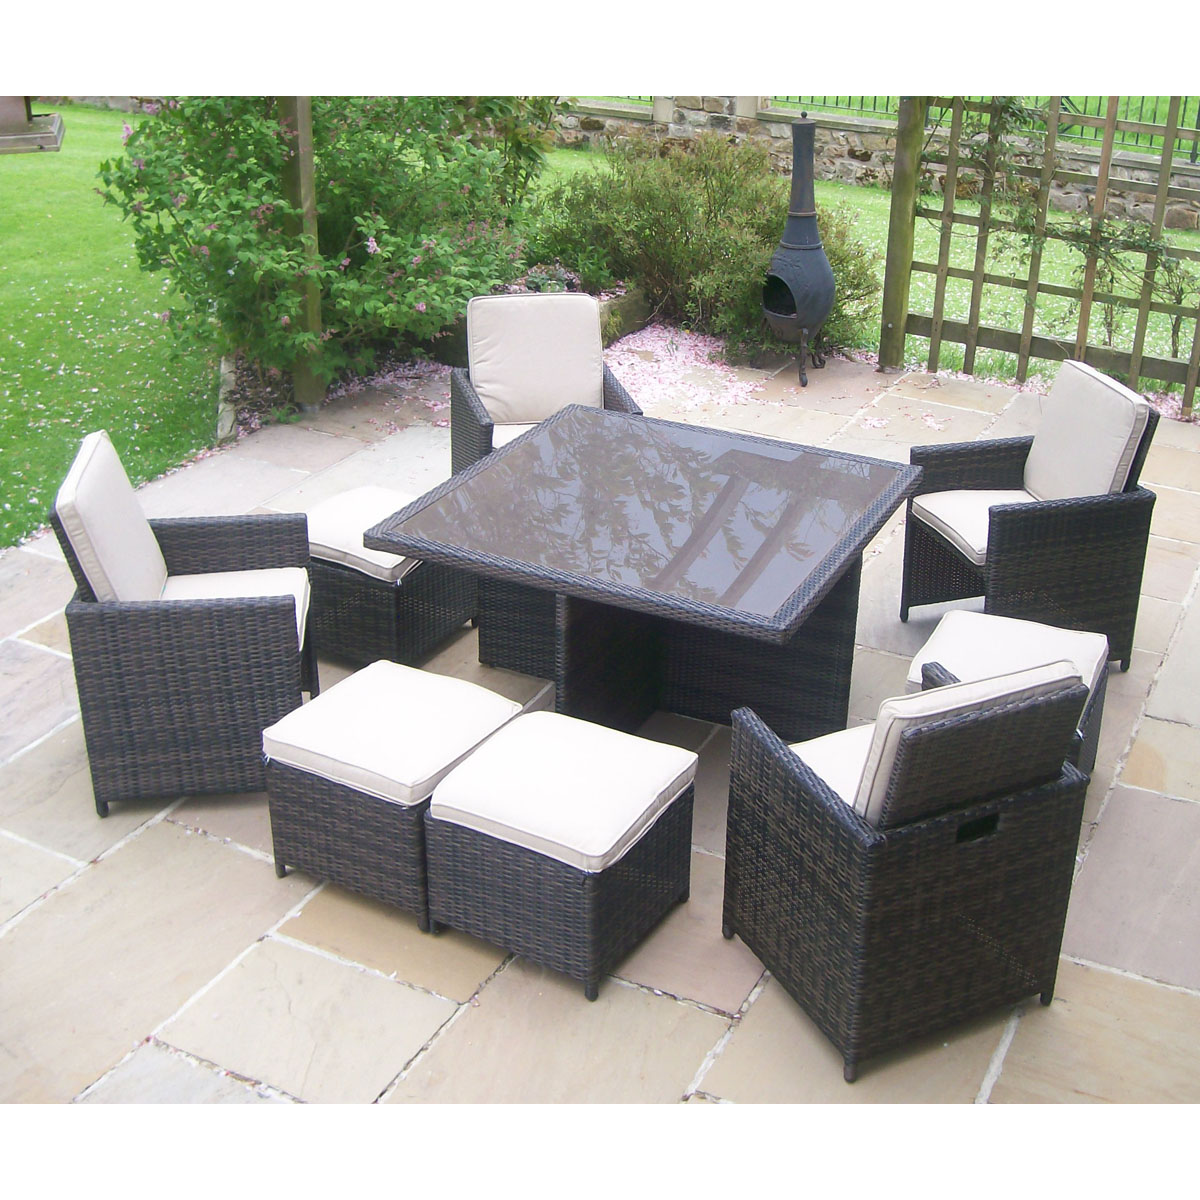 Rattan wicker garden furniture table 4 chair patio set ebay for Garden furniture table and chairs